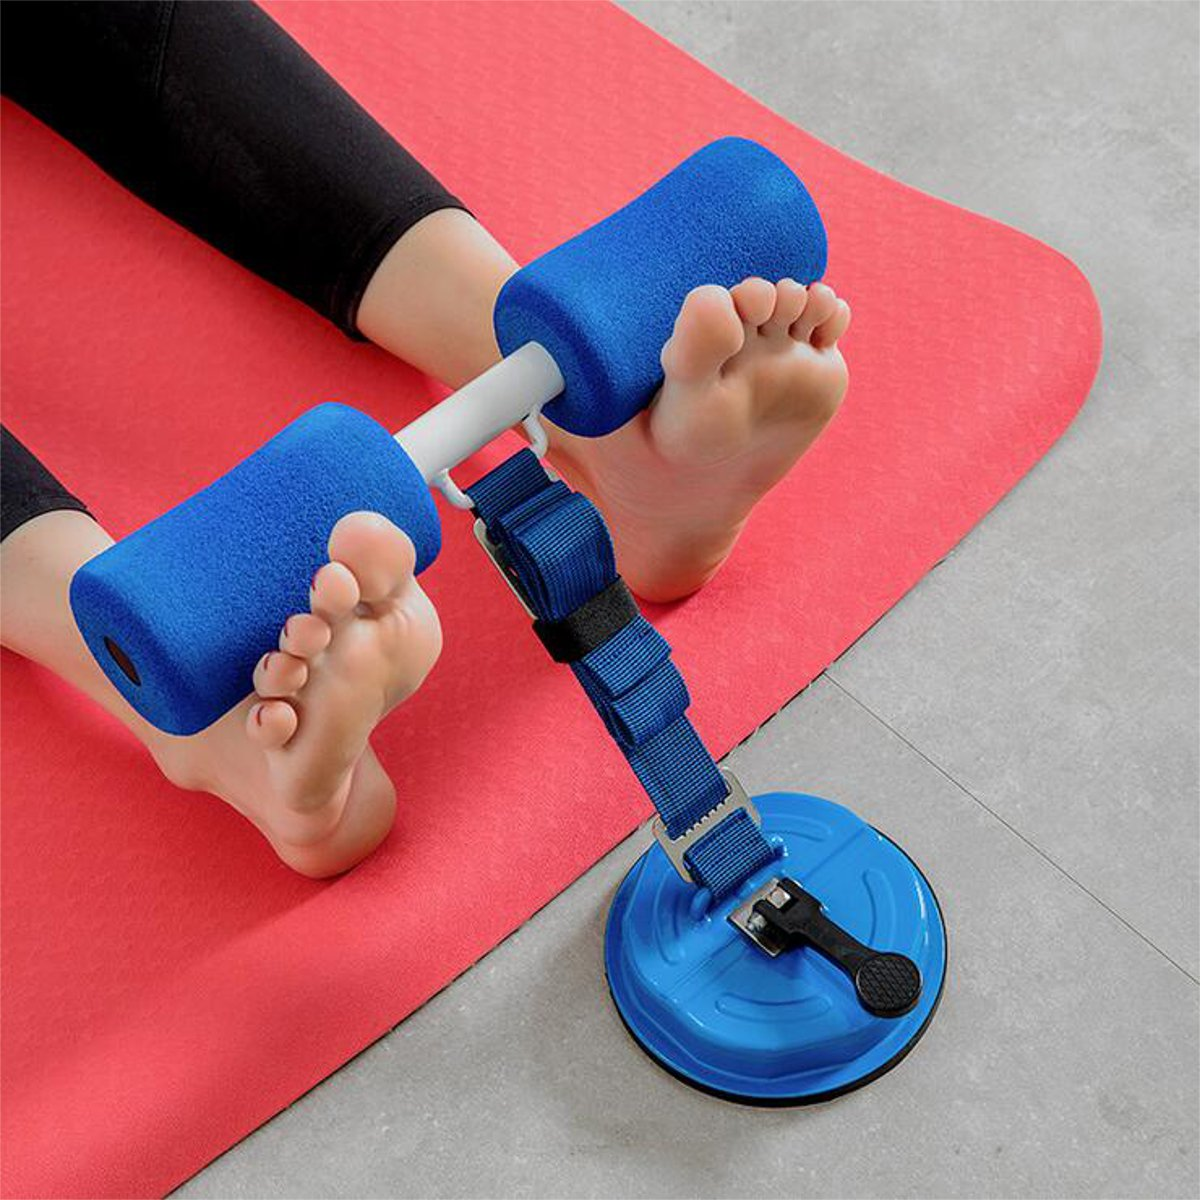 Abdominal Suction Cup Sit Up Aid Vest Line Abdominal Muscle Training Fitness Equipment